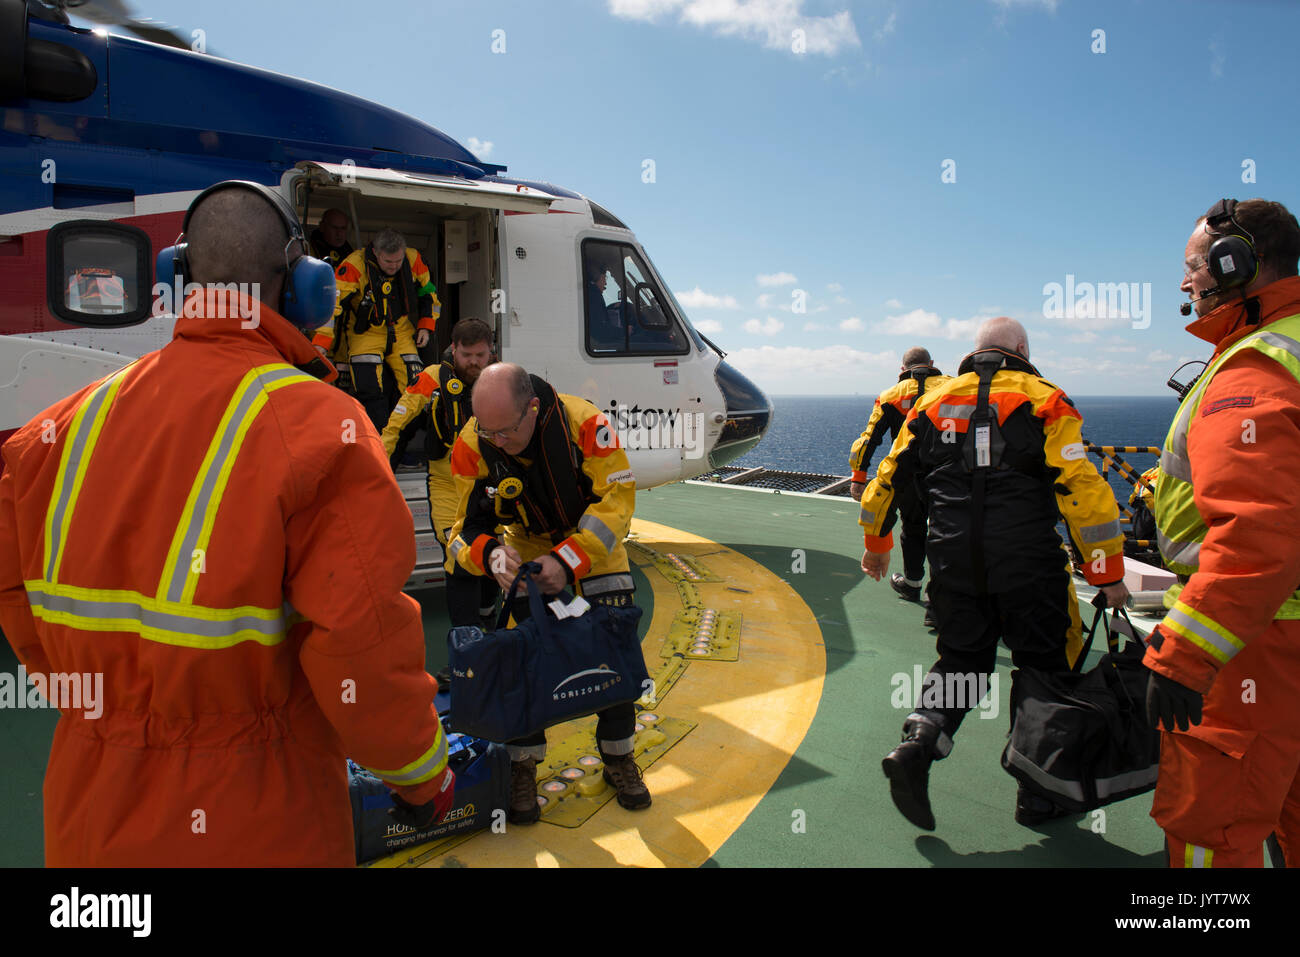 Bristow Helicopter, landing on a north sea oil and gas platform,  while passengers disembark. credit: LEE RAMSDEN / ALAMY - Stock Image